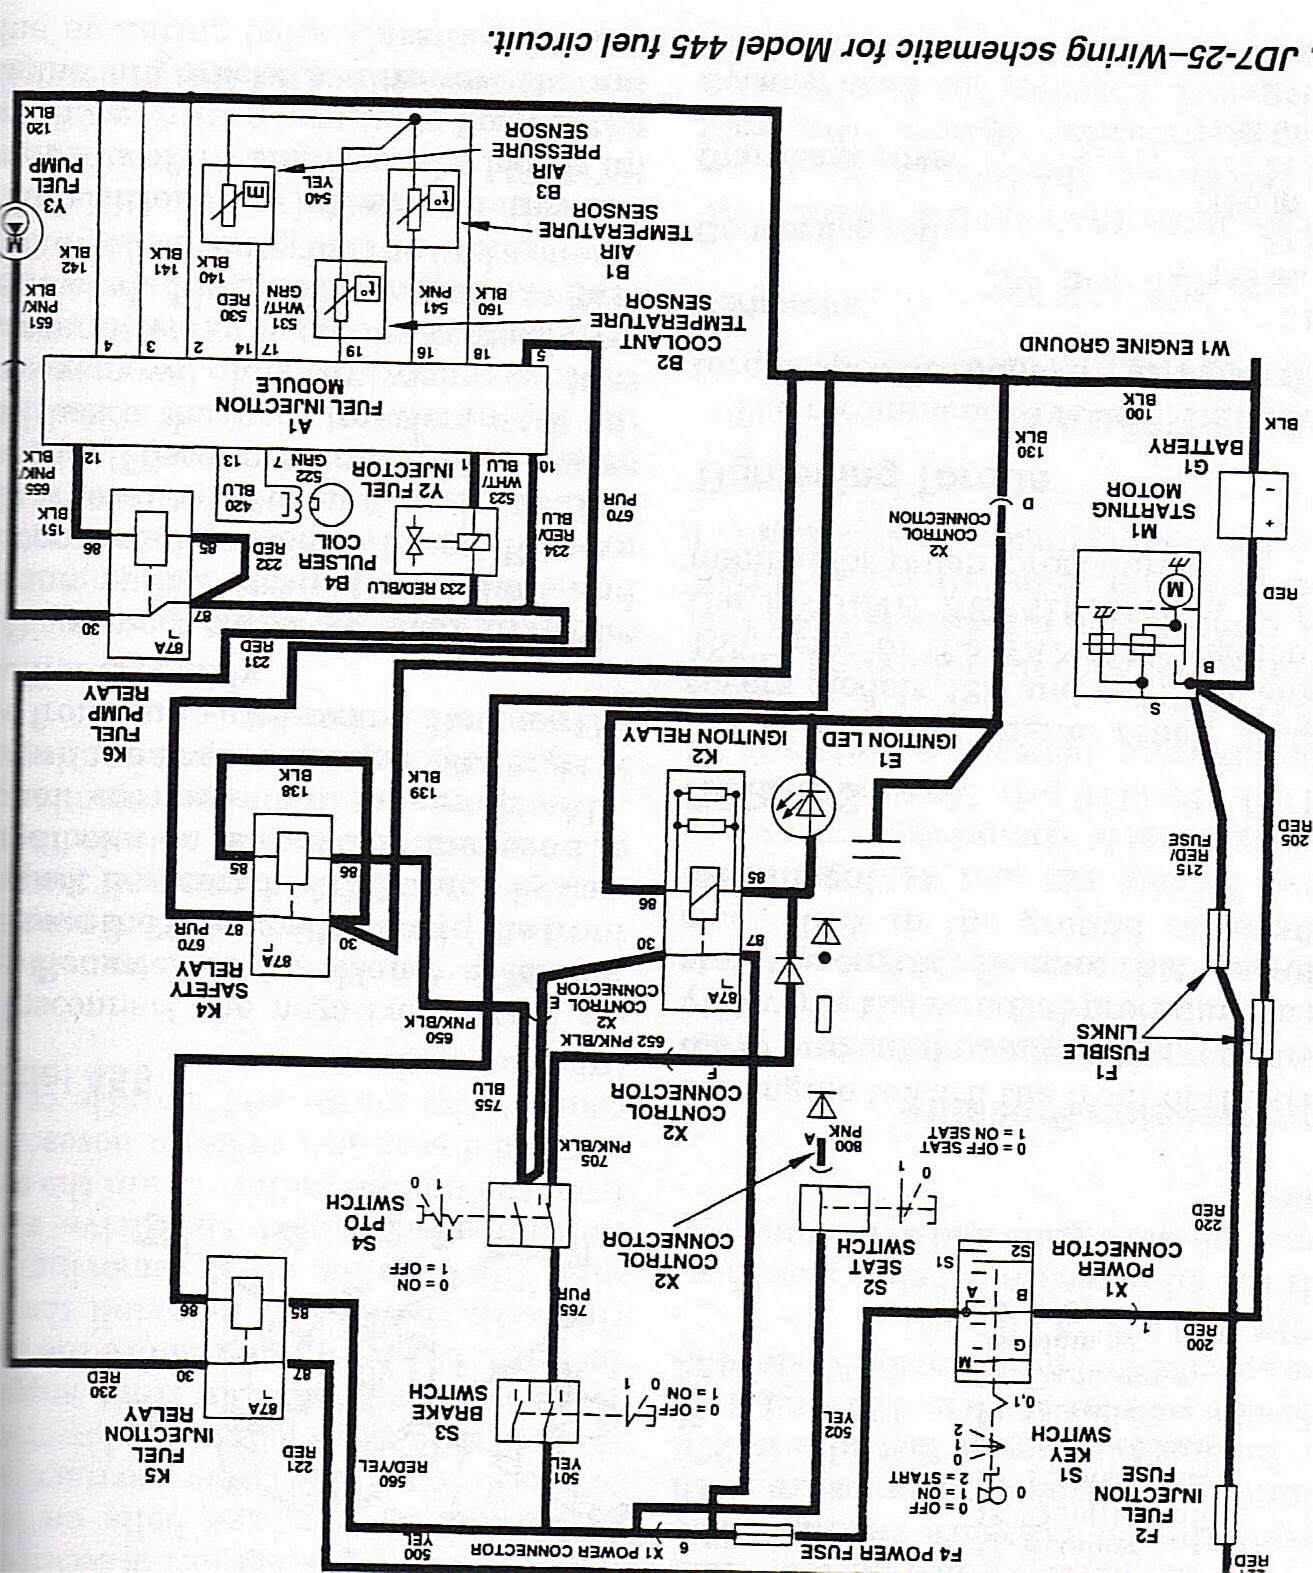 Wiring Diagrams For 757 John Deere 25 Hp Kawasaki Diagram -